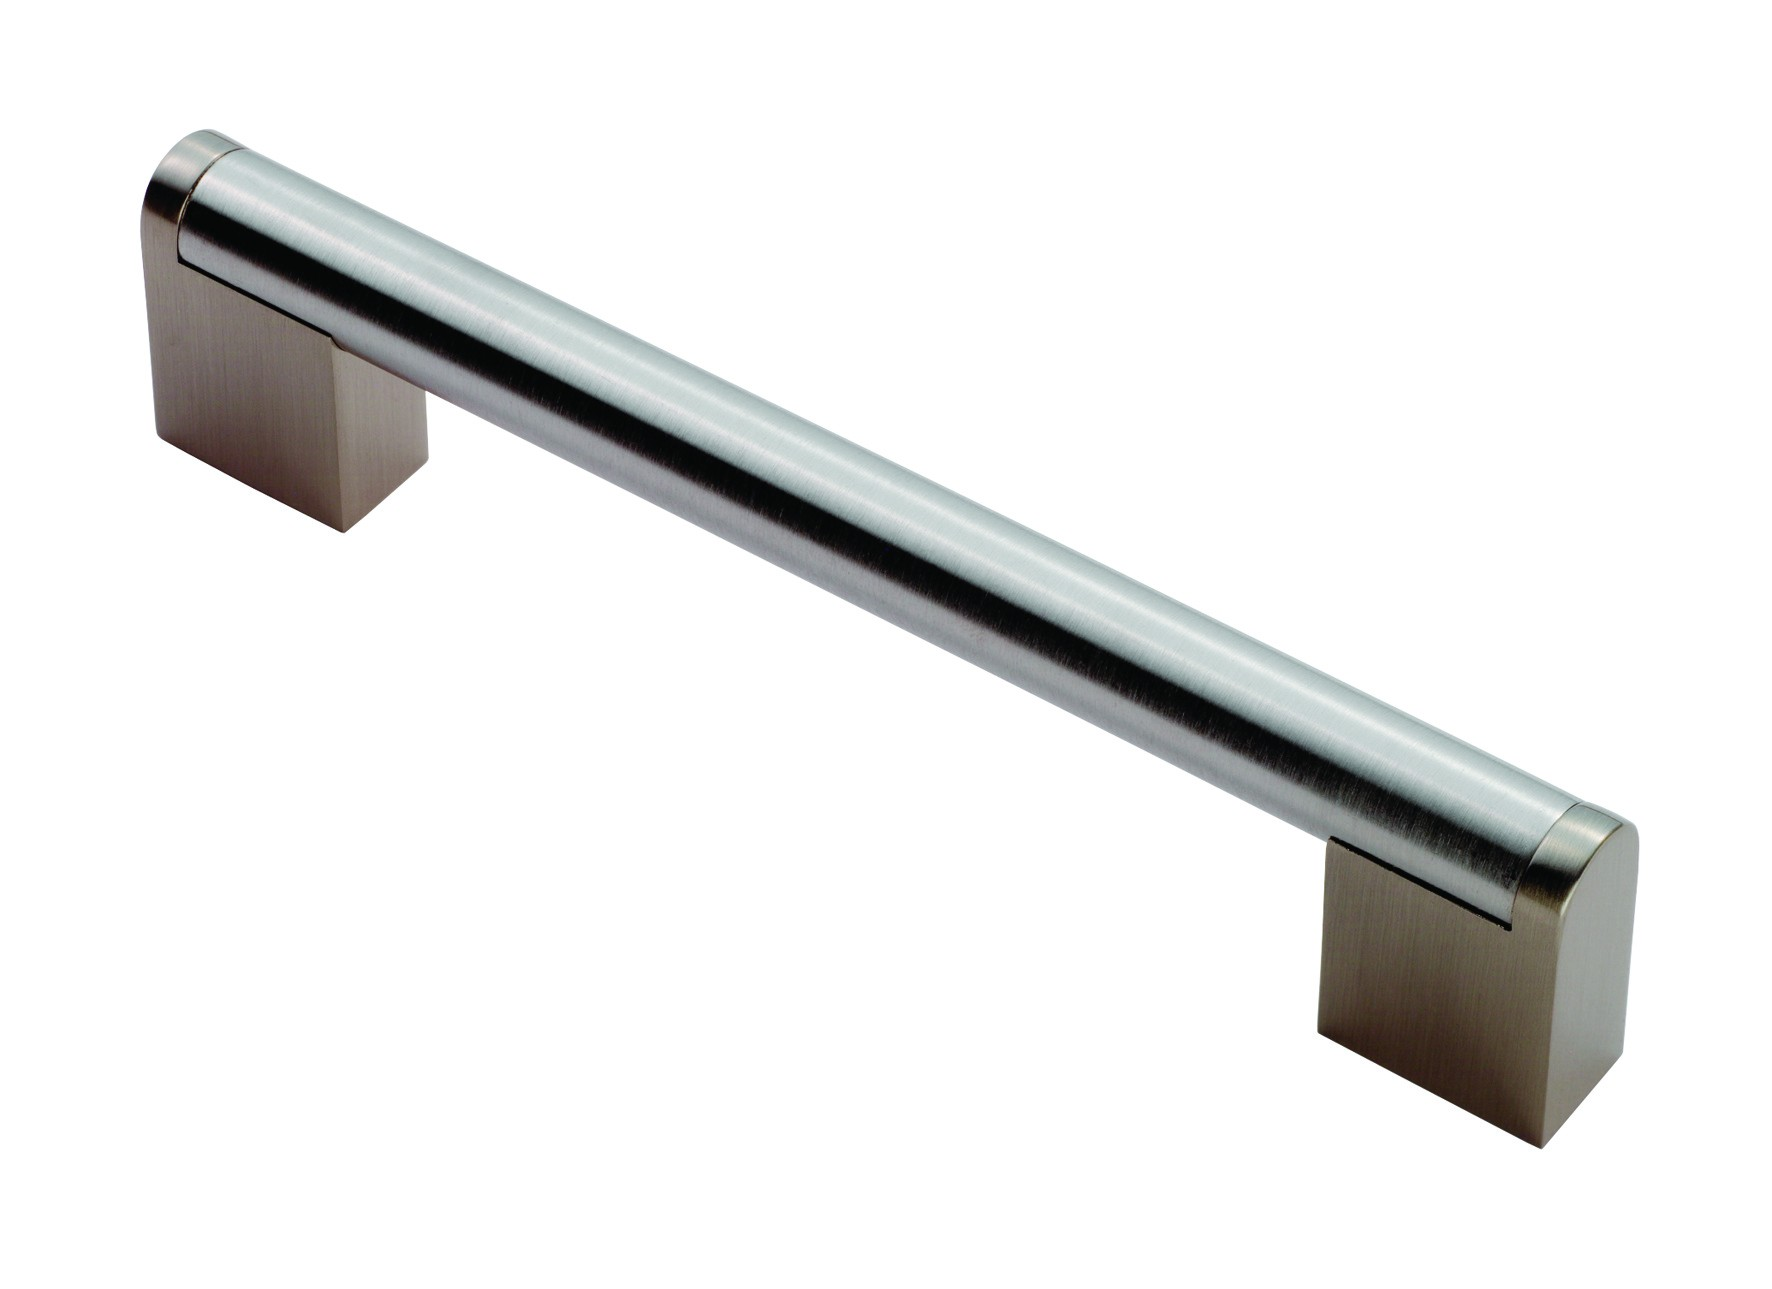 Boss bar D handle 14mm satin nickel stainless steel